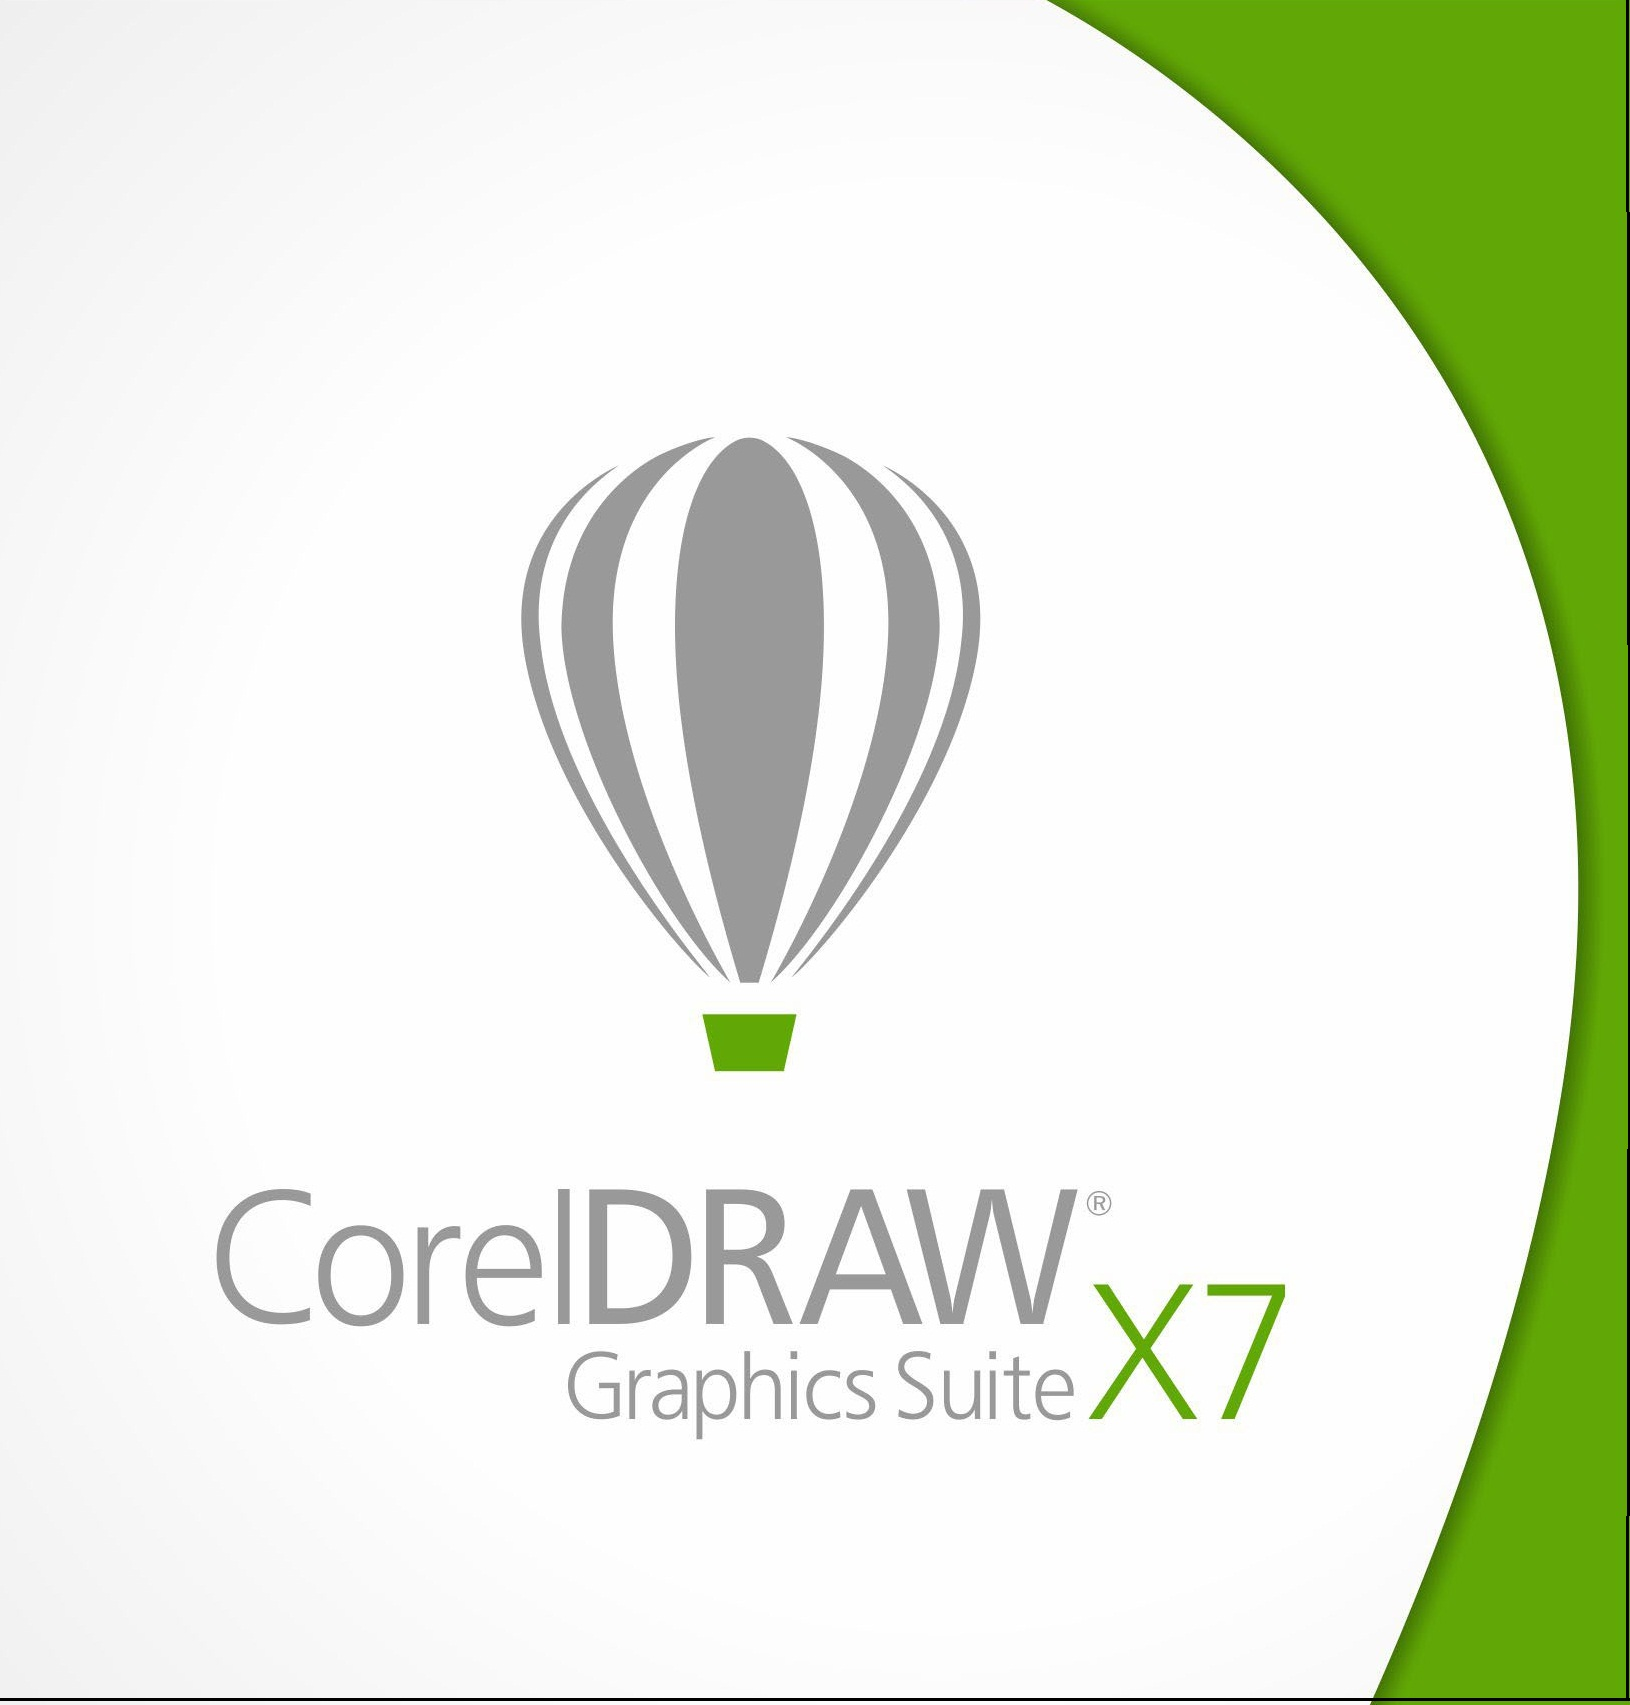 coreldraw graphics suite x7 activation code free